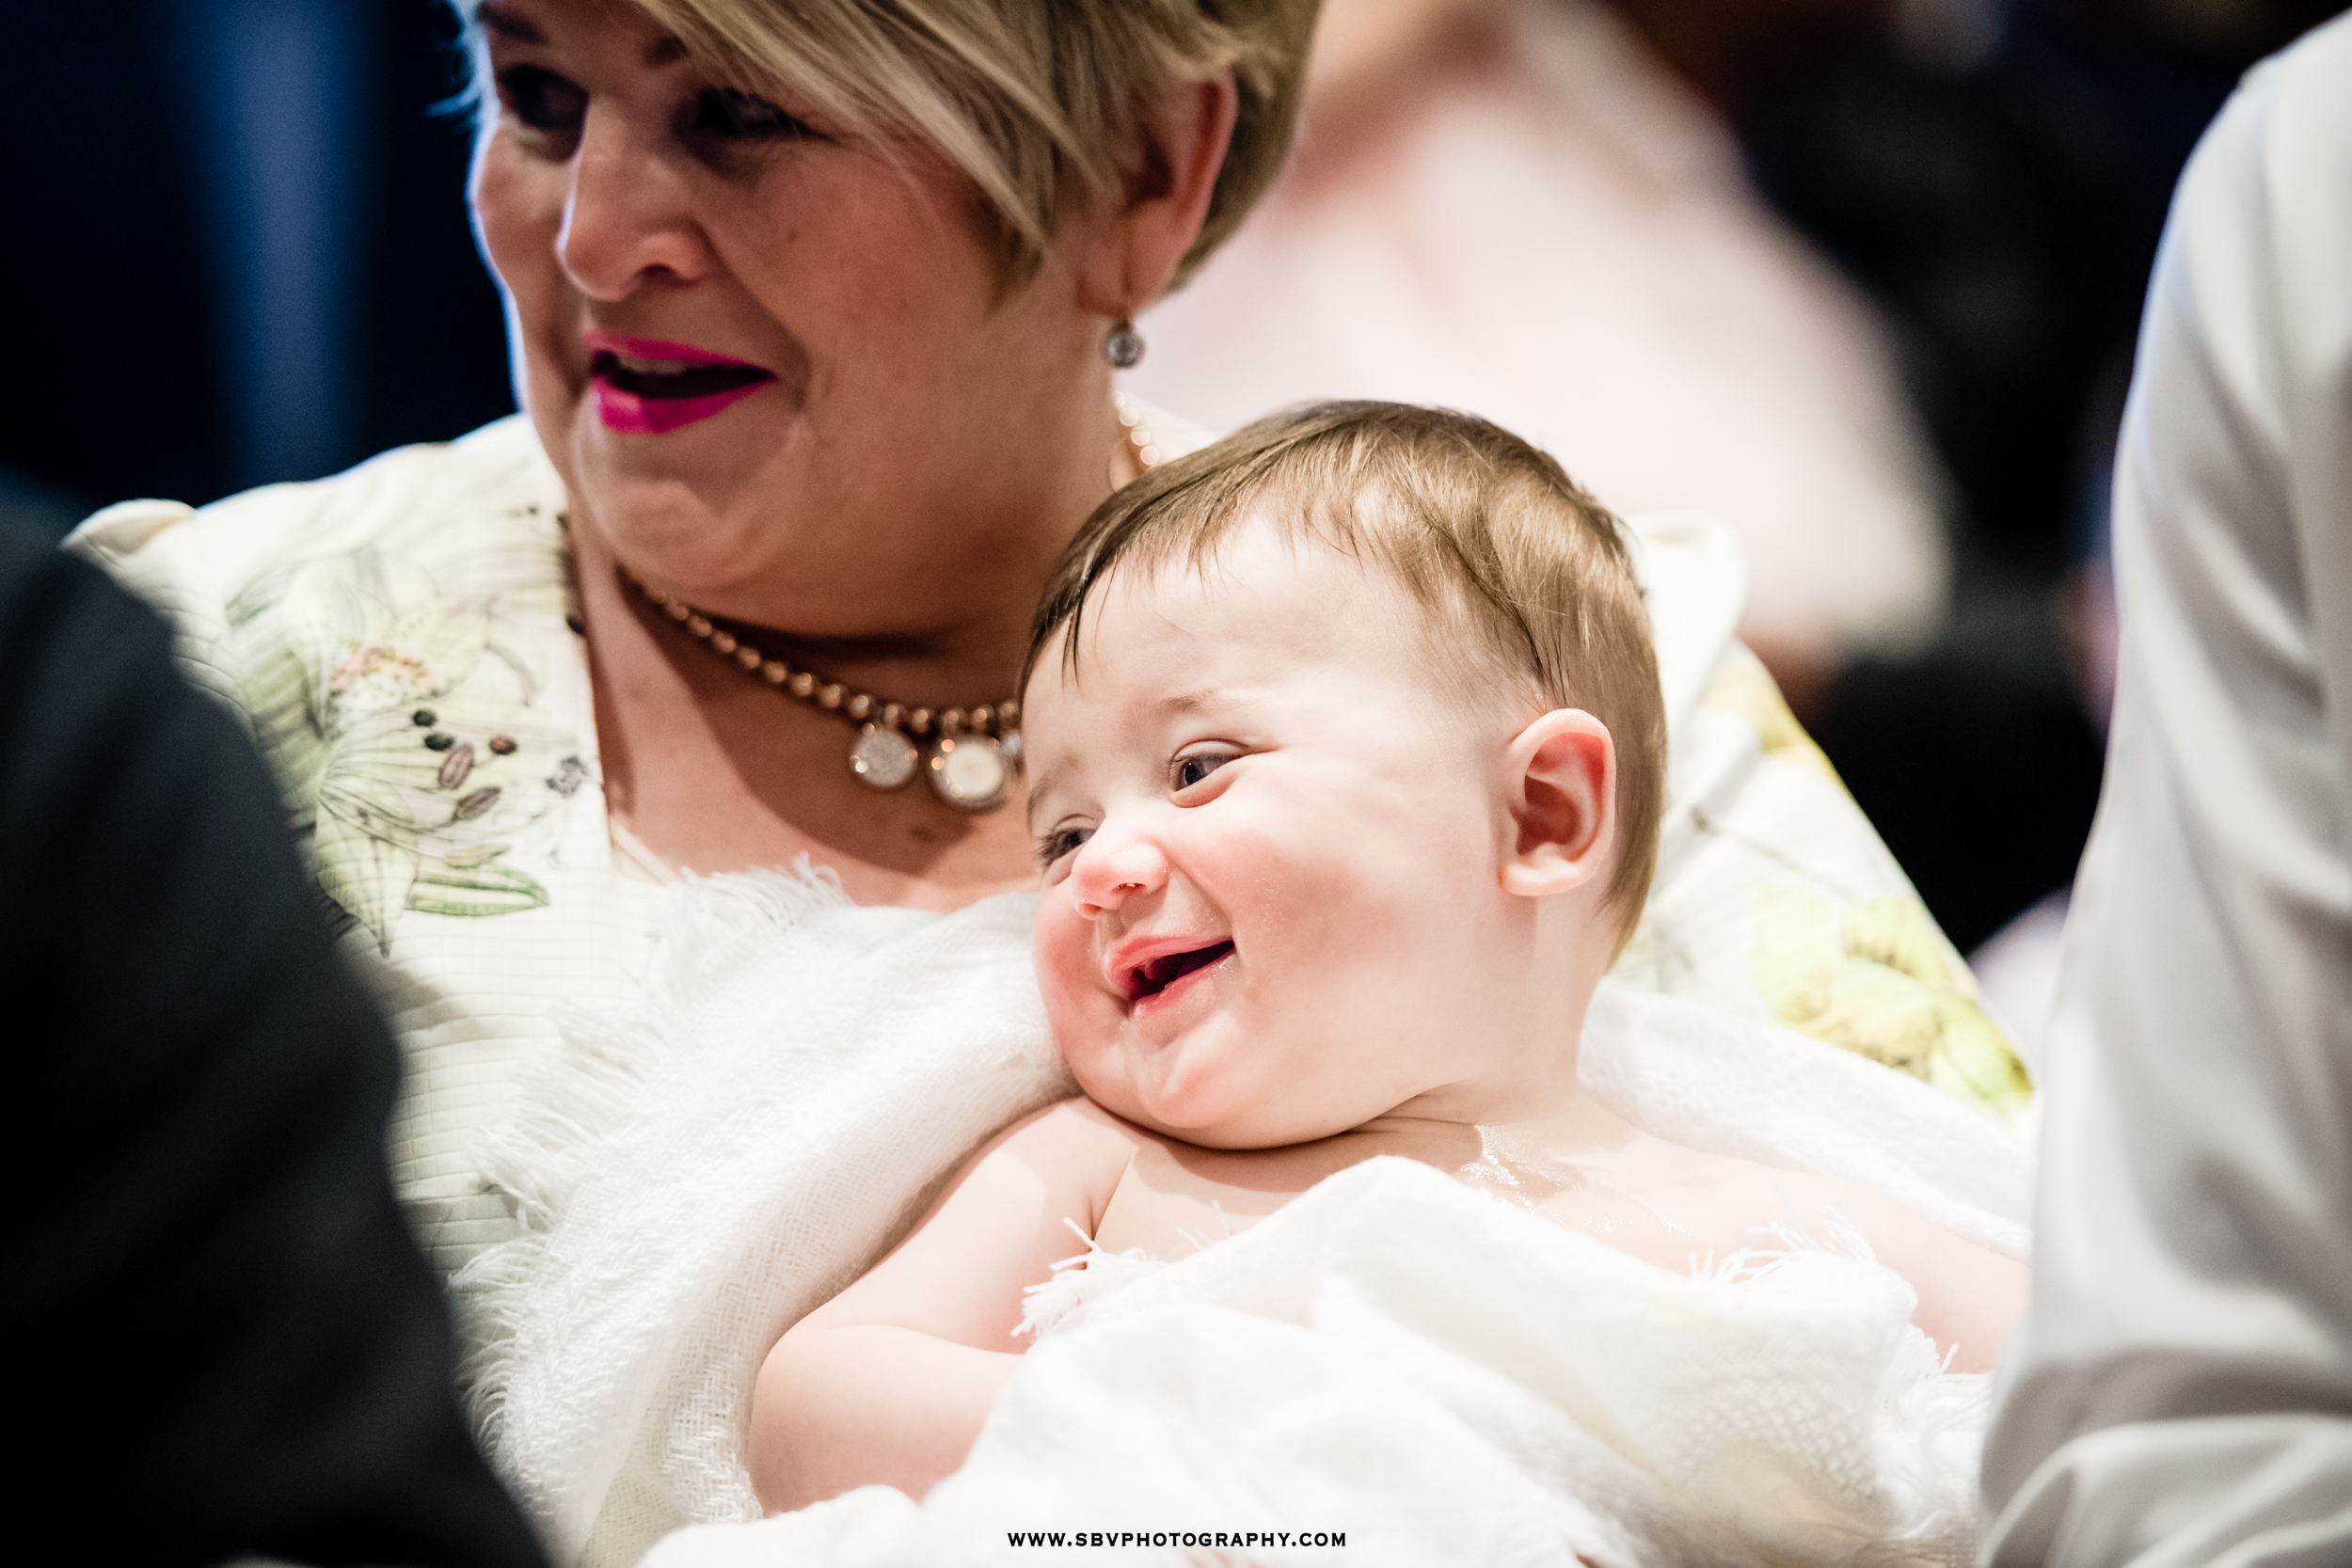 Happy baby during his baptismal ceremony.